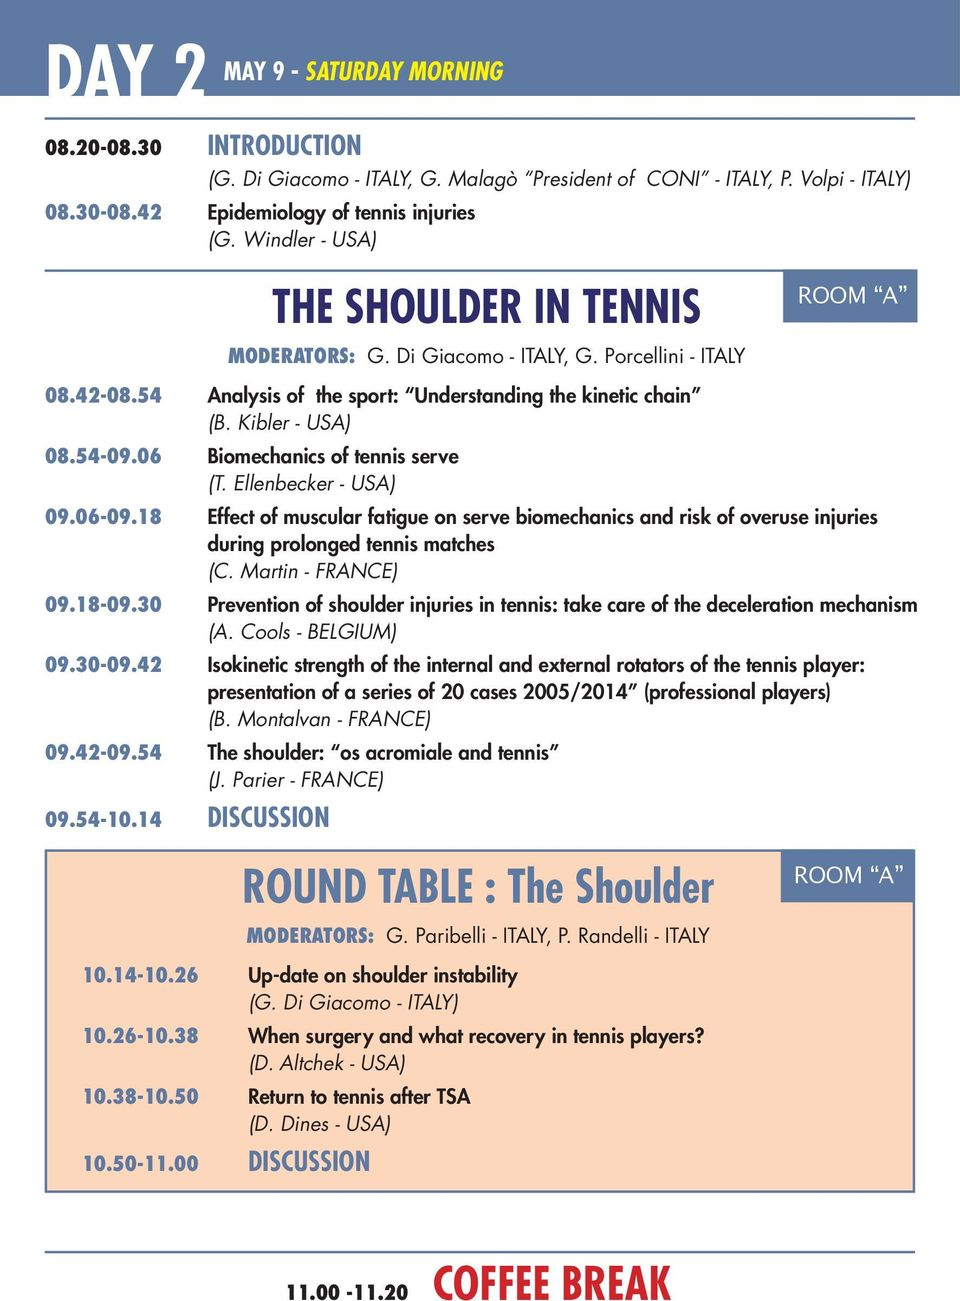 06 Biomechanics of tennis serve (T. Ellenbecker - USA) 09.06-09.18 Effect of muscular fatigue on serve biomechanics and risk of overuse injuries during prolonged tennis matches (C.